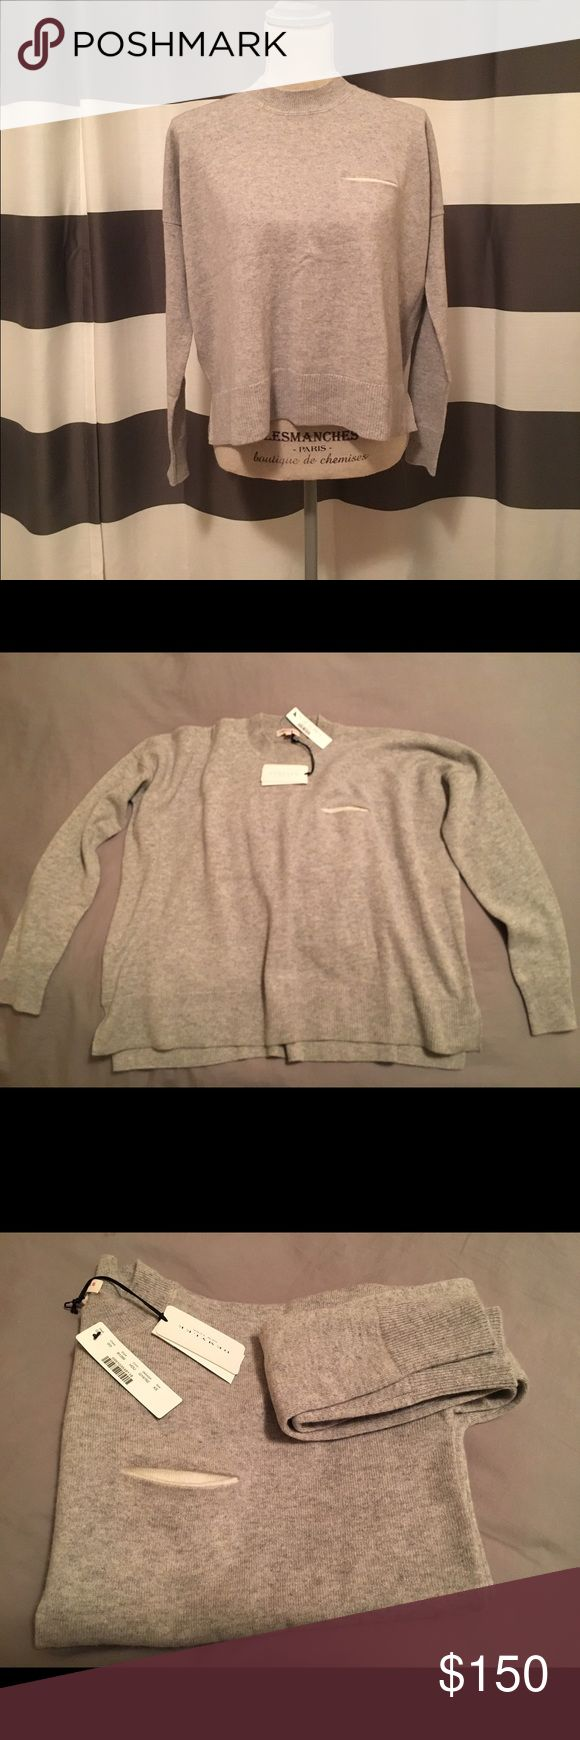 Demylee for J.crew 100% cashmere sweater size XS Demylee for J.Crew gray cashmere sweater. Size XS NWT and never worn! Super cute slightly boxy sweater with an adorable discrete little pocket. 100% cashmere sweater retailed for $320, only asking $150! Demylee for J.Crew Sweaters Crew & Scoop Necks